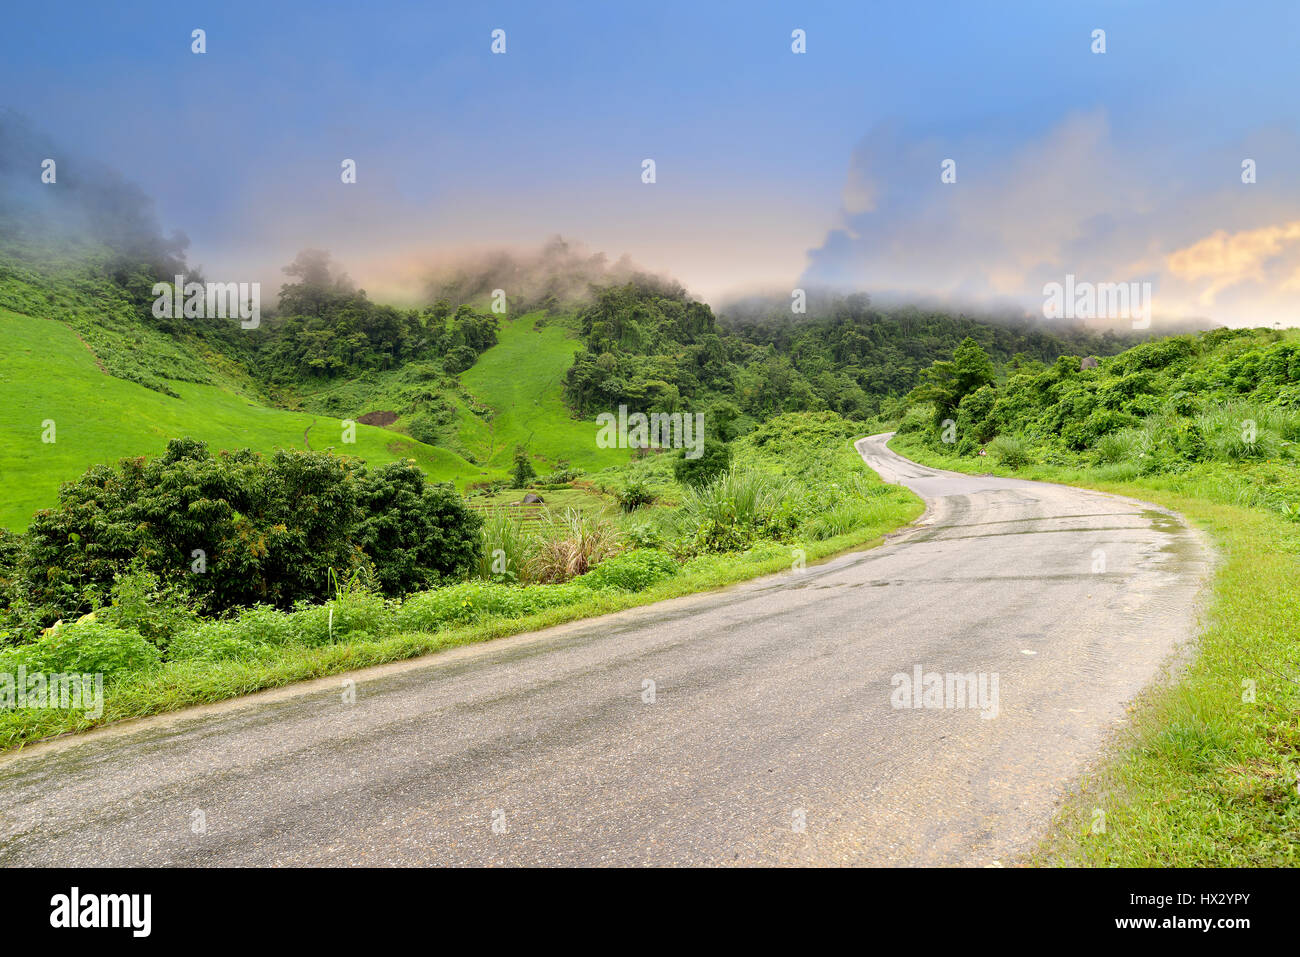 Mountain road view in the north of Laos wide and cloudy low lighting after raining - Stock Image